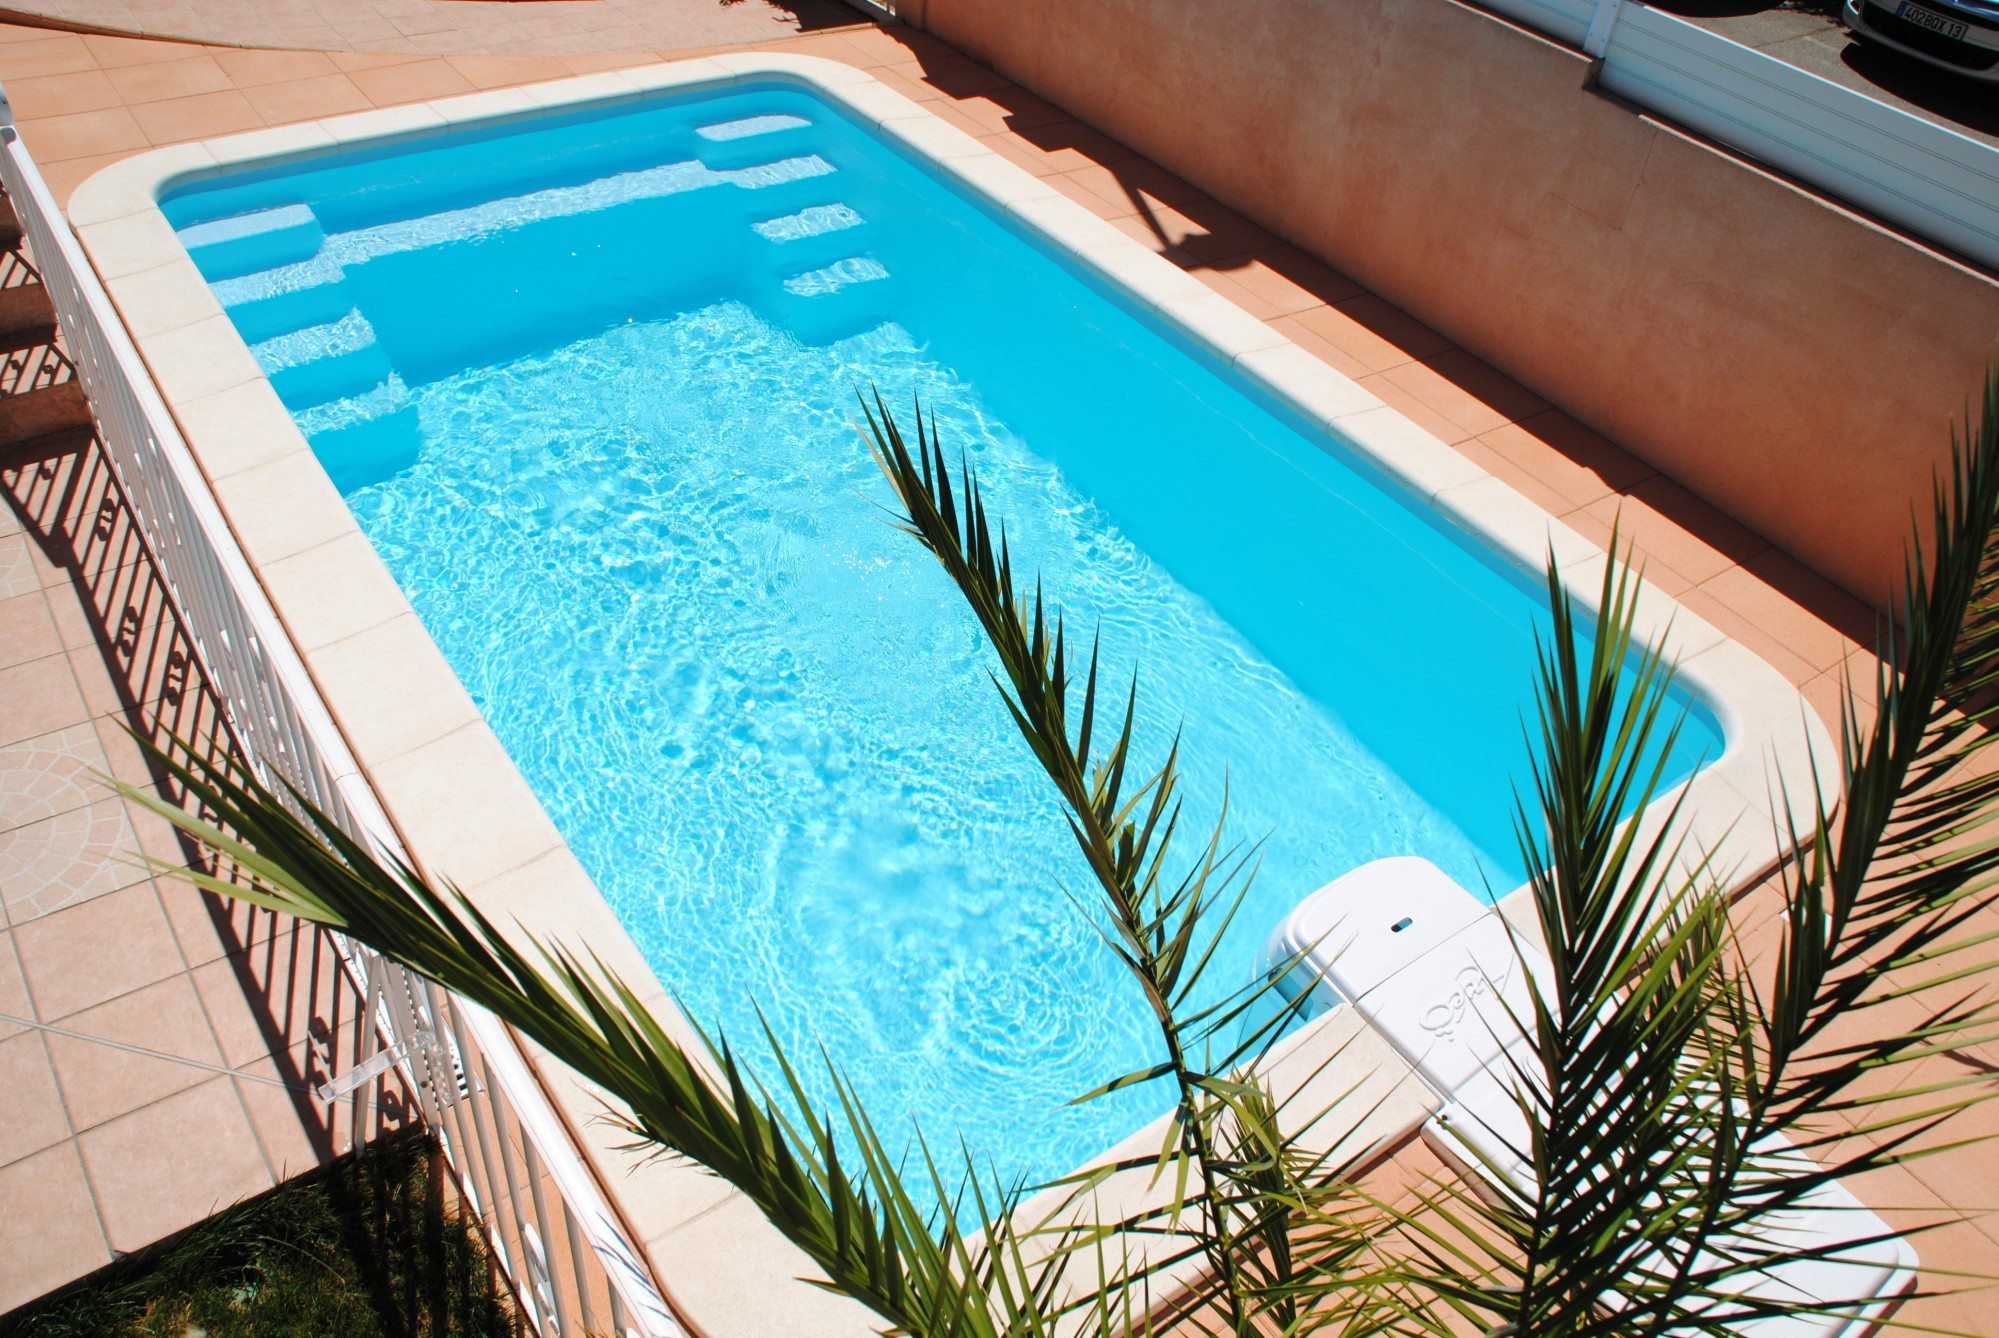 Piscine enterr e coque 6x3 pr te plonger prix for Prix des piscines